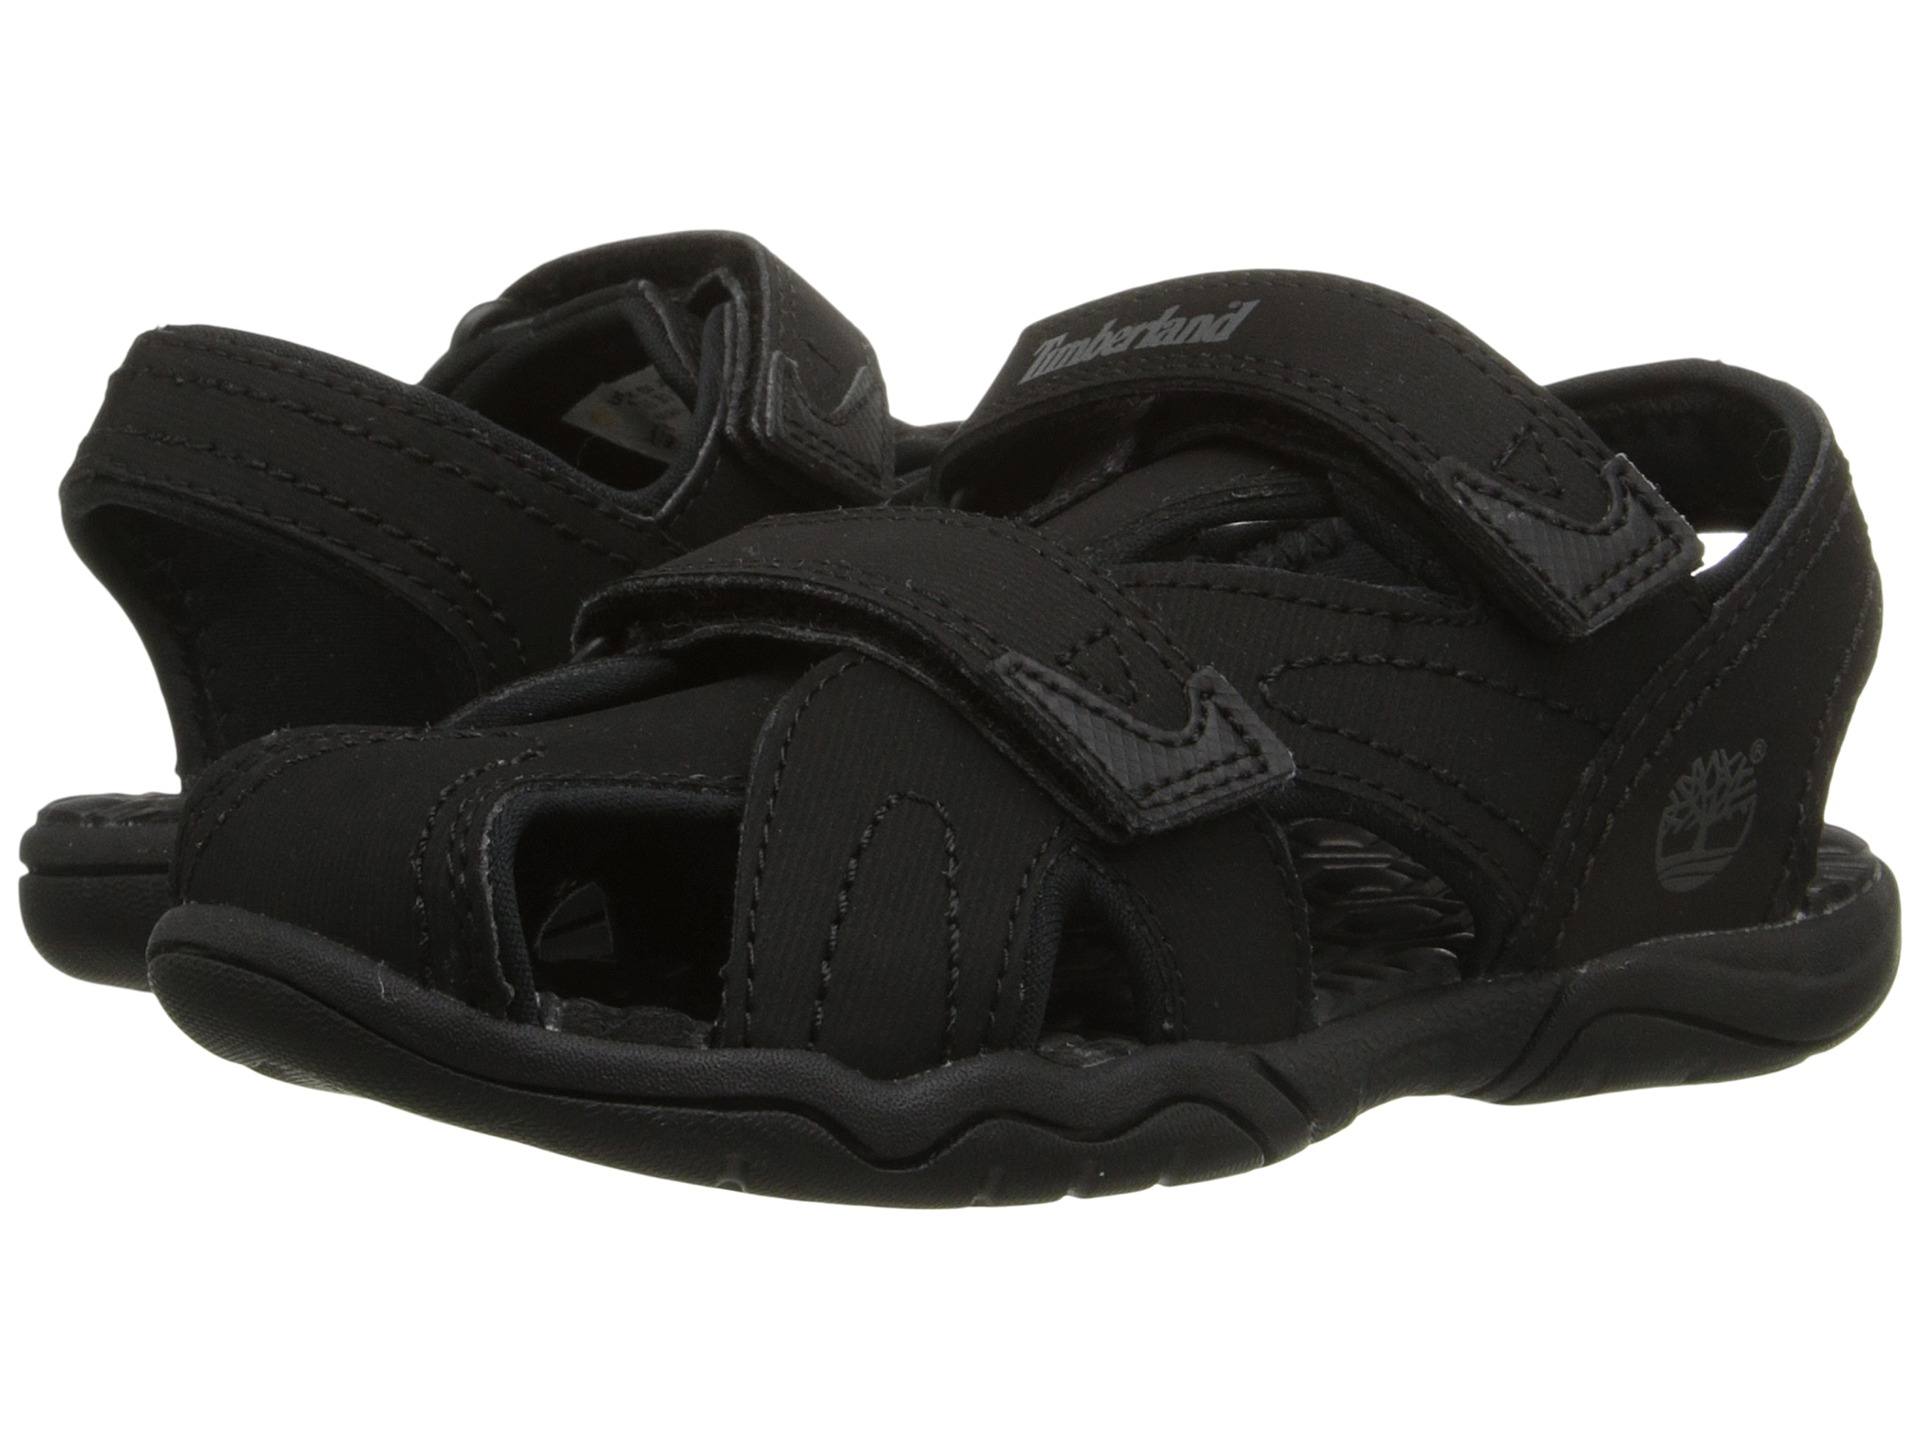 timberland adventure seeker closed toe sandal